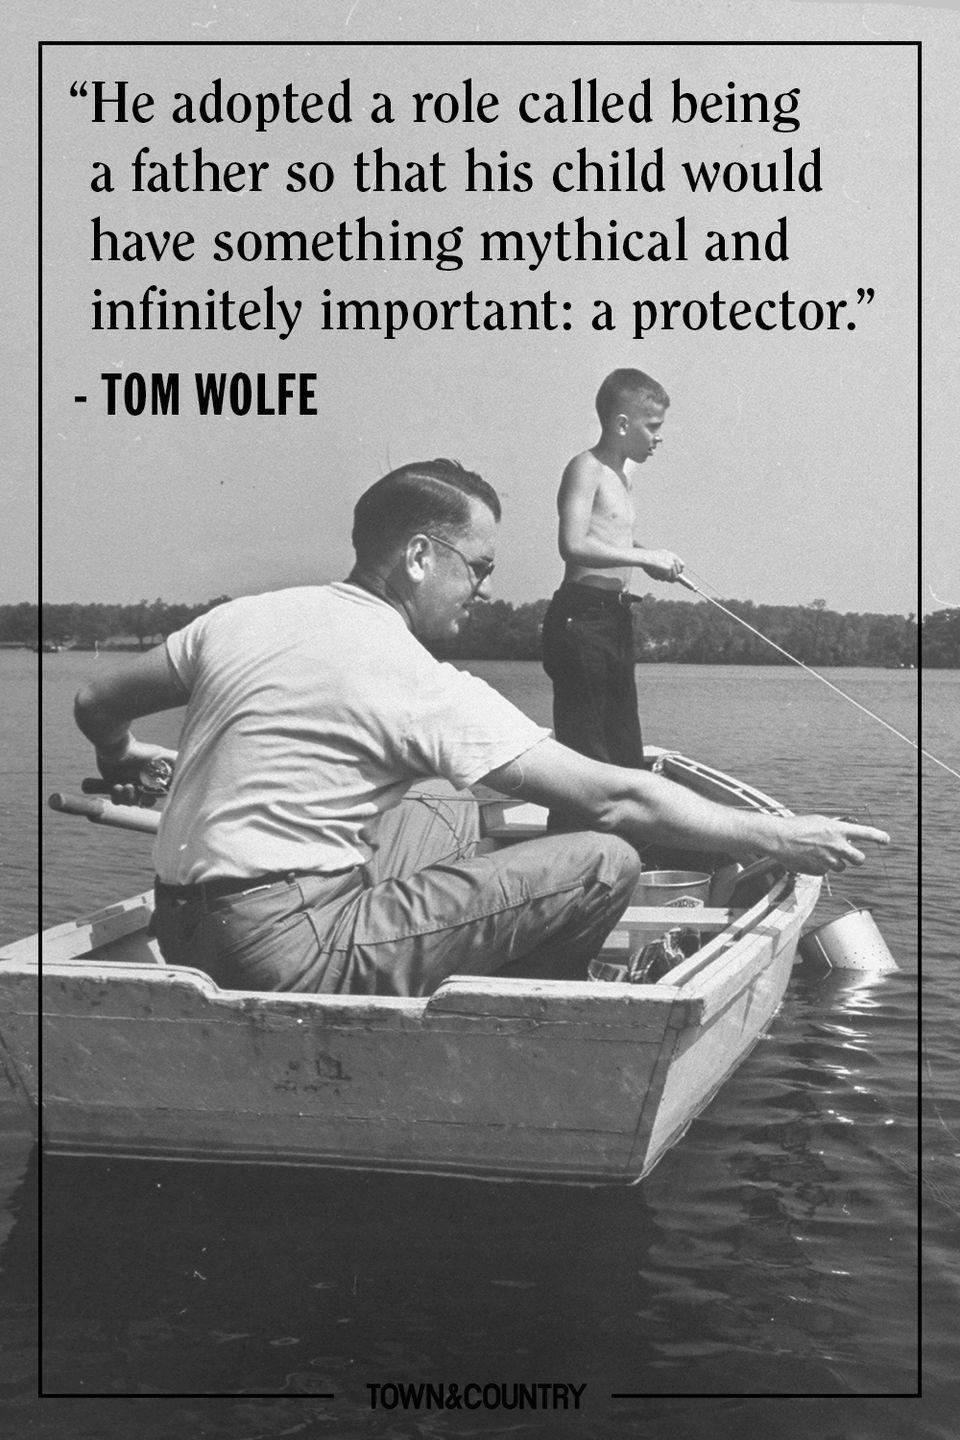 "<p>""He adopted a role called being a father so that his child would have something mythical and infinitely important: a protector.""</p><p>- Tom Wolfe</p>"